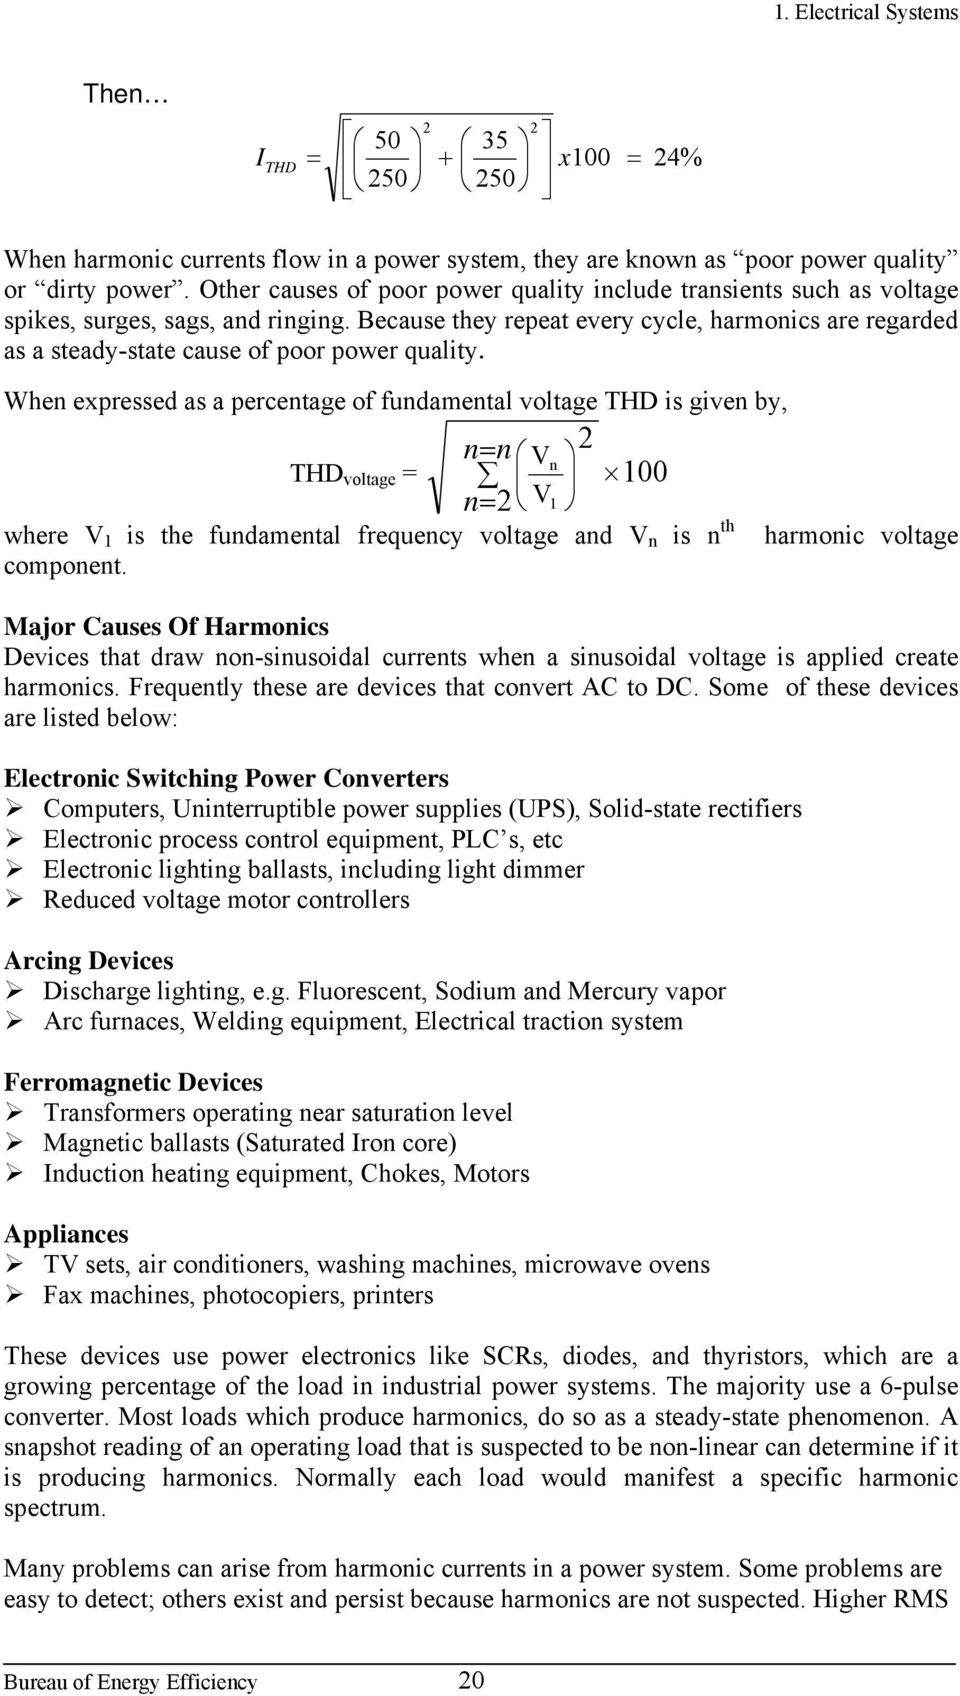 1 Electrical System Pdf Power Supplies And Voltage Regulators For Lowvoltages Heaters Because They Repeat Every Cycle Harmonics Are Regarded As A Steady State Cause Of 21 Current